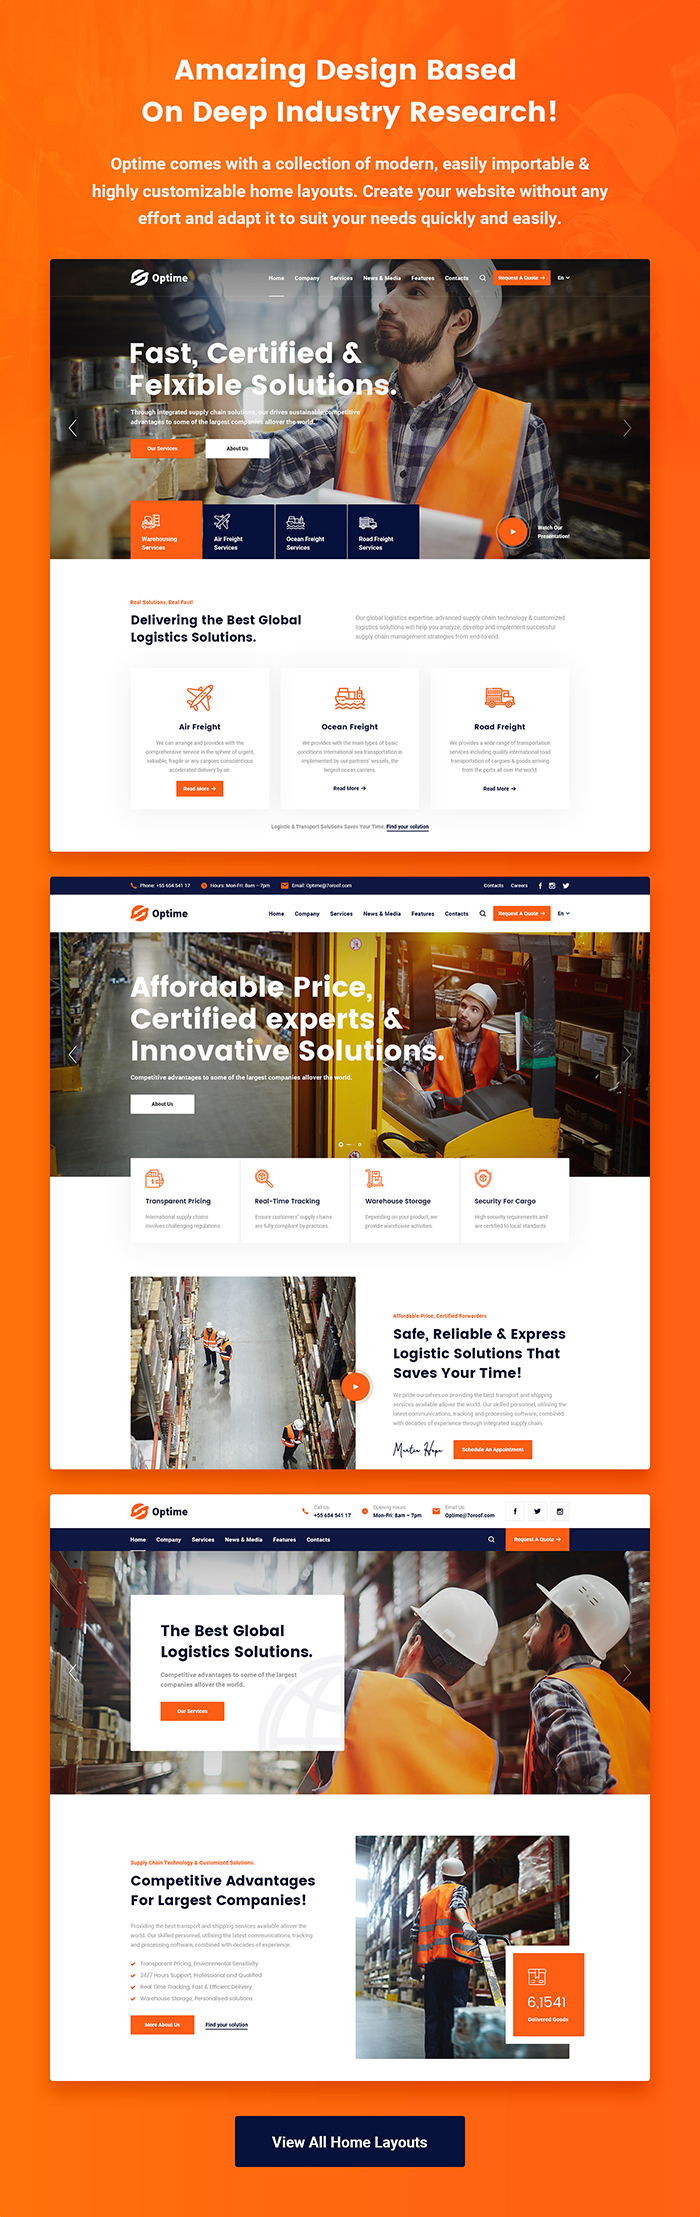 Optime - Logistics & Transportation WordPress Theme - 5